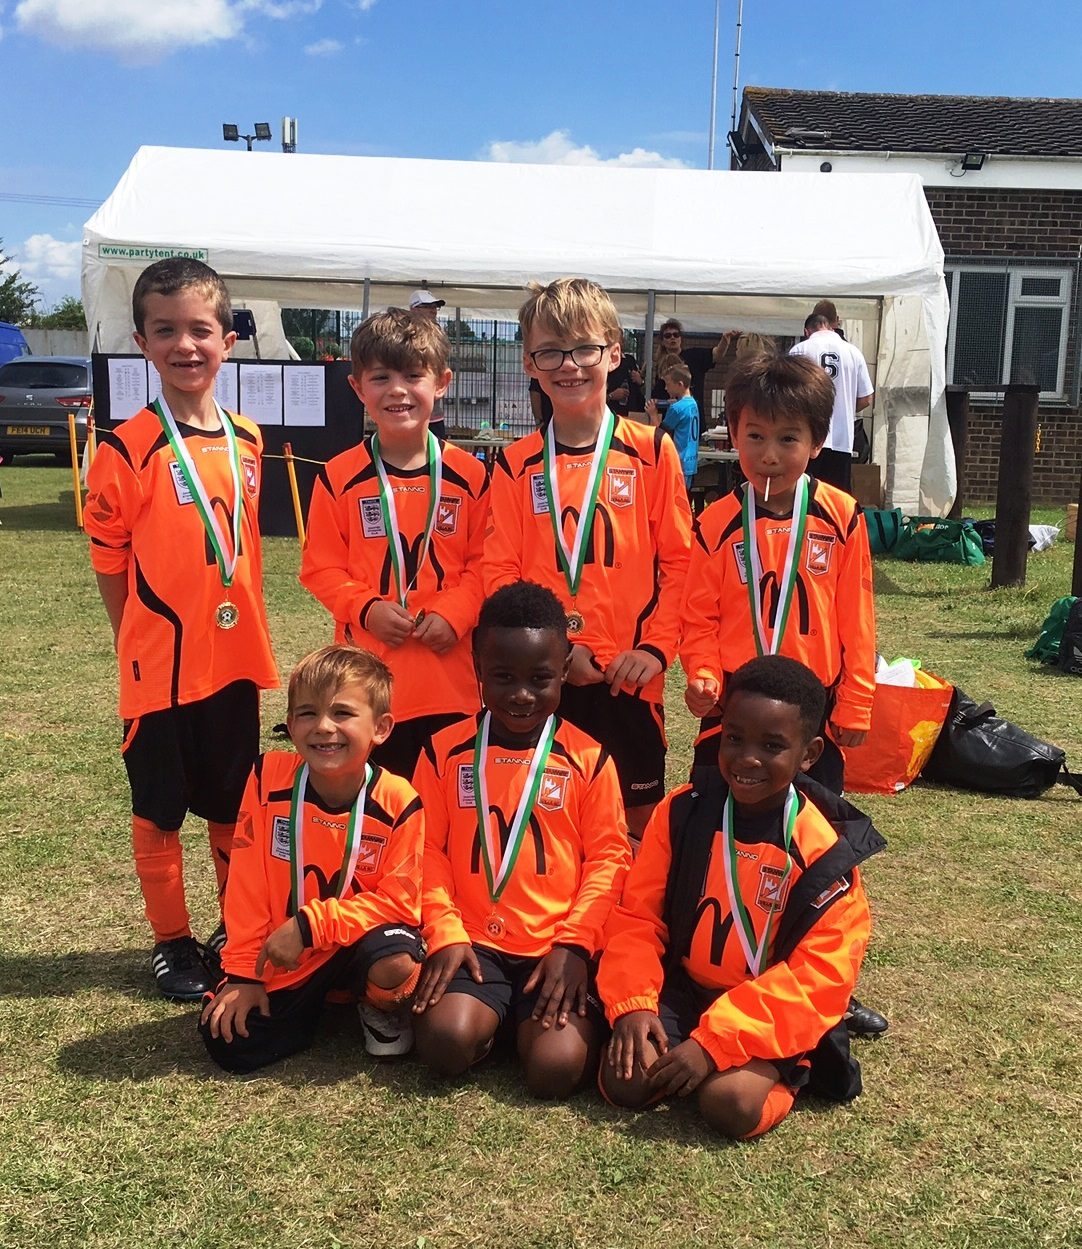 GALLERY – Under 9's – Yellows